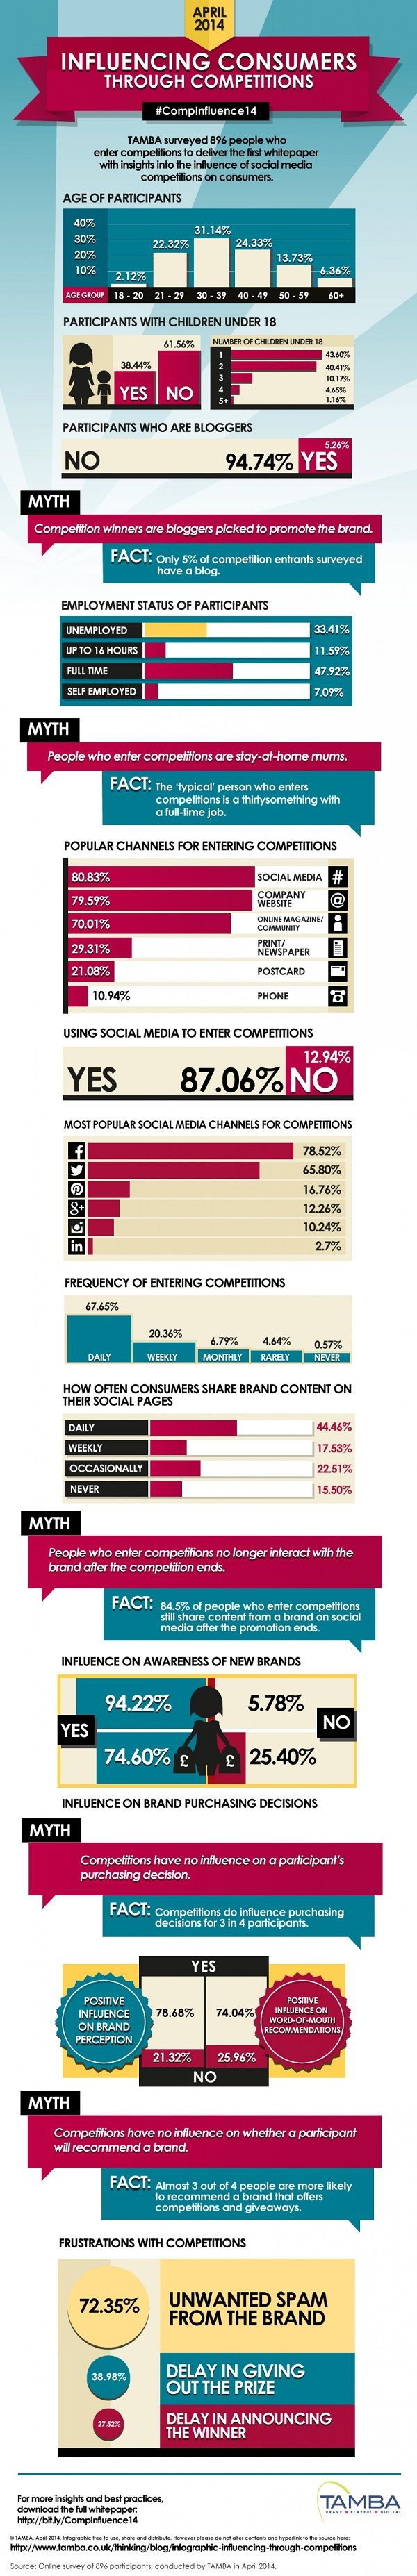 How Social Media Contests Influence Consumers [Infographic]